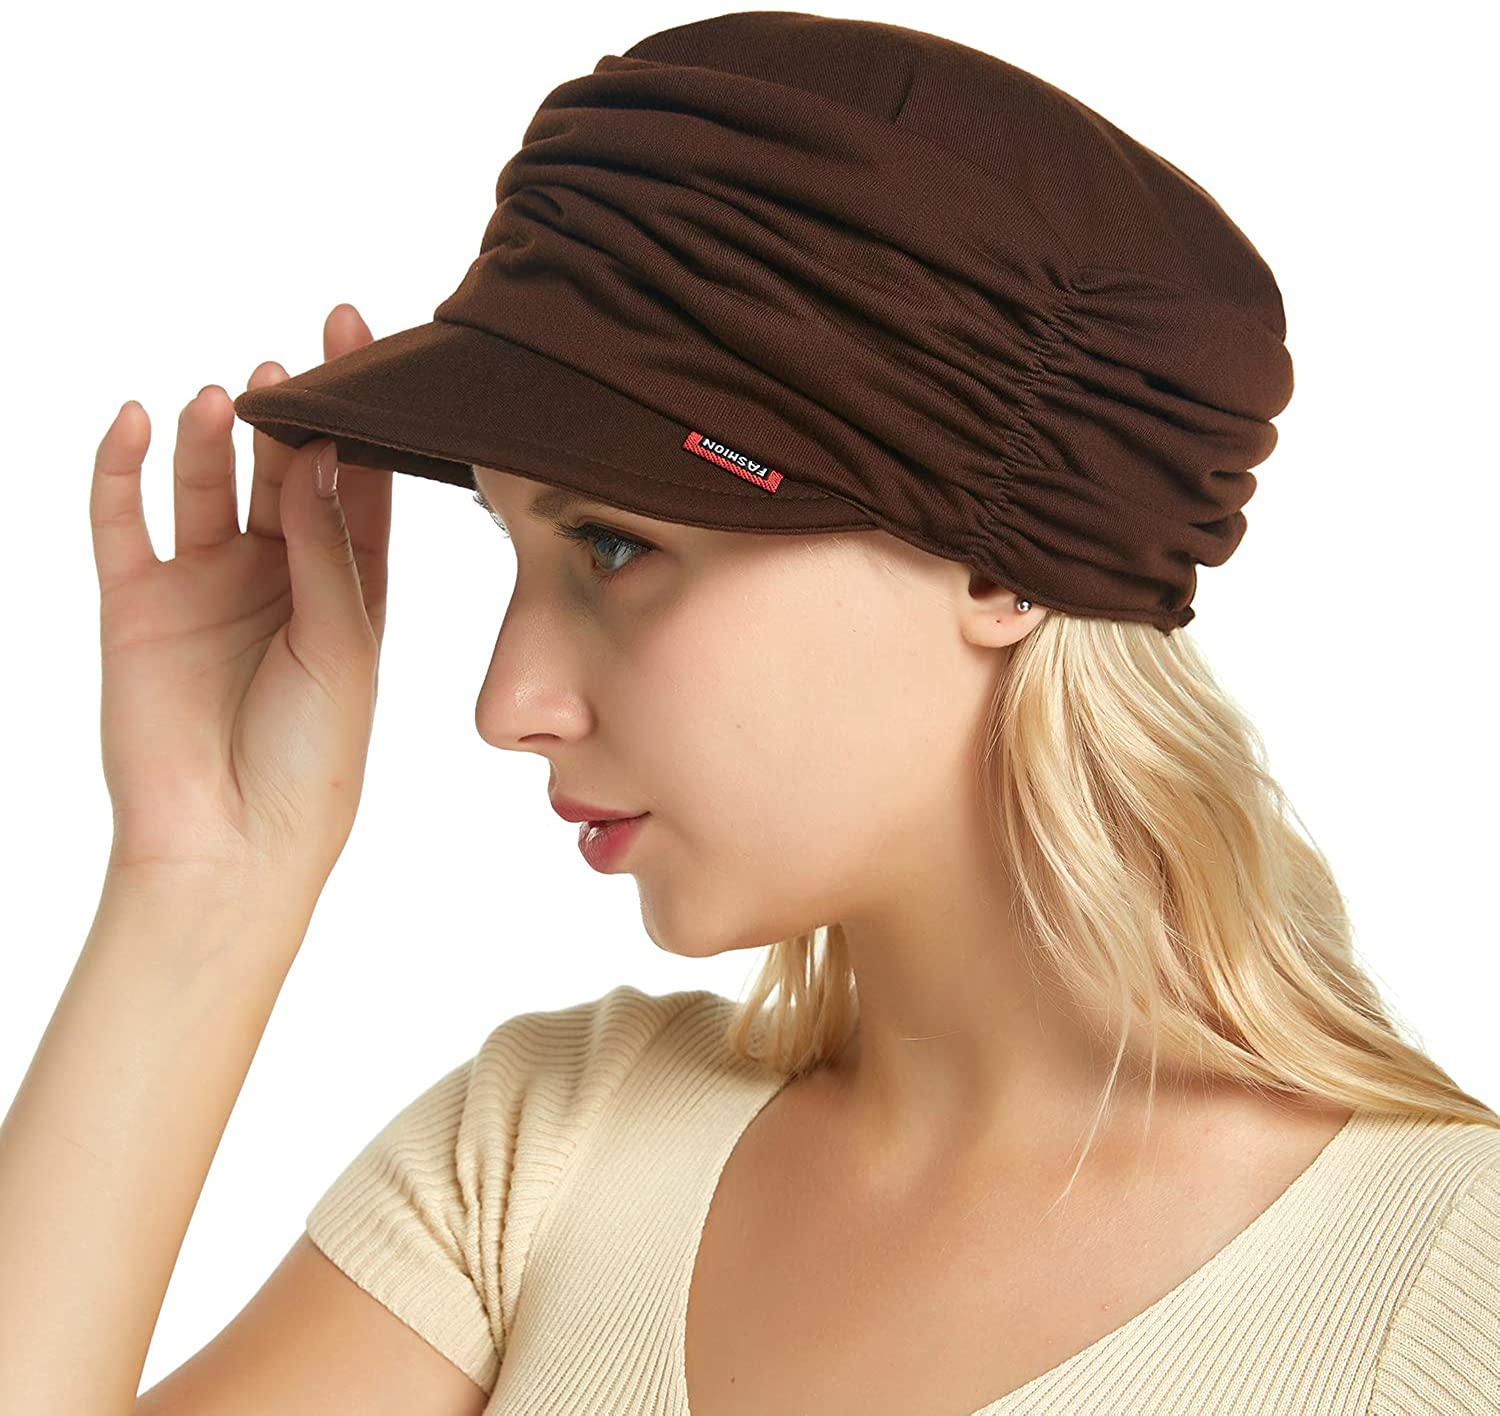 Best for Daily Use HatsCity Fashion Hat Cap with Brim Visor for Woman Ladies